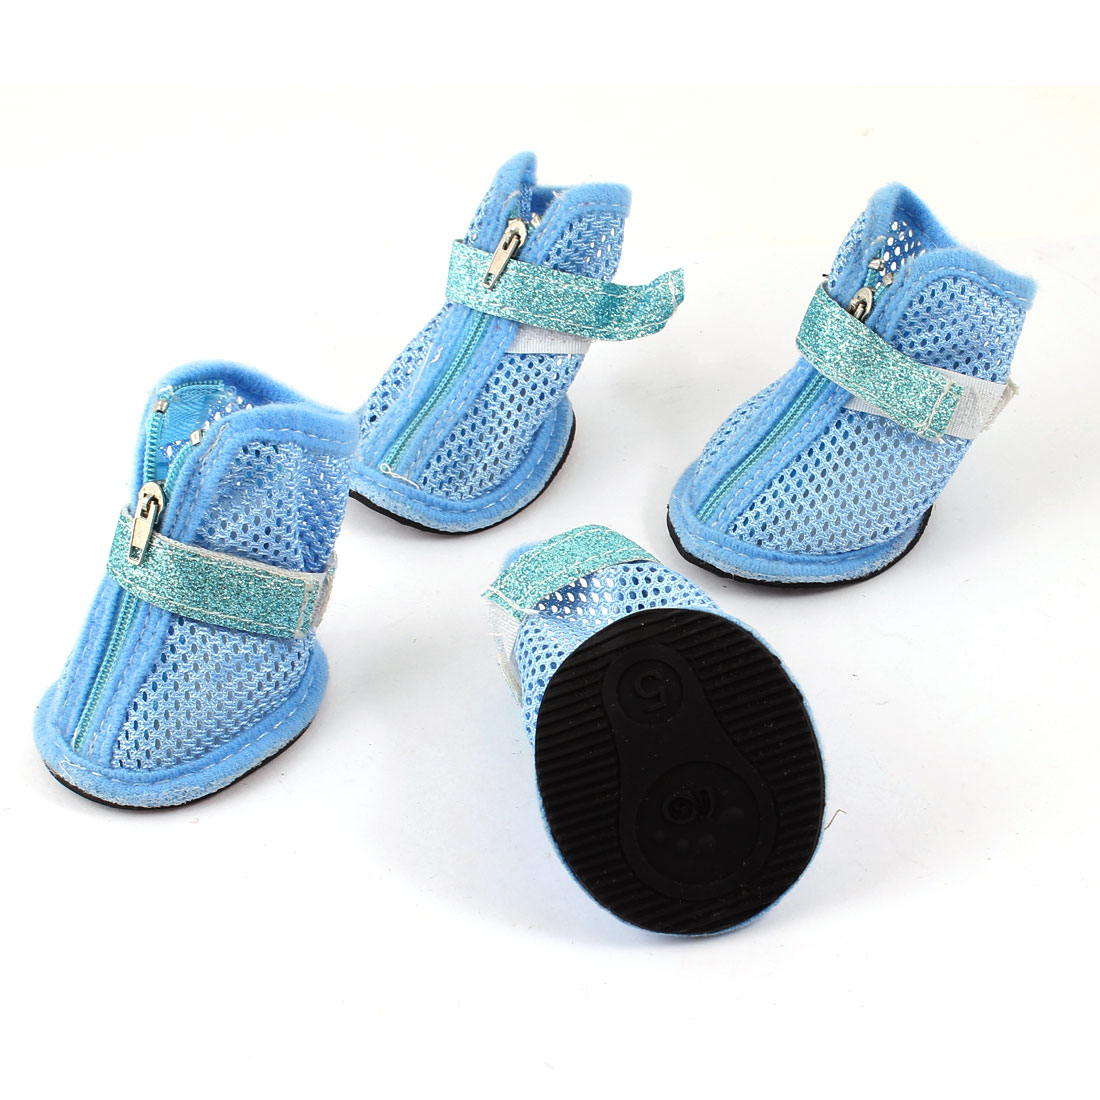 2 Pair Hook Loop Closure Pet Yorkie Doggy Mesh Shoes Boots Booties Blue Size XS